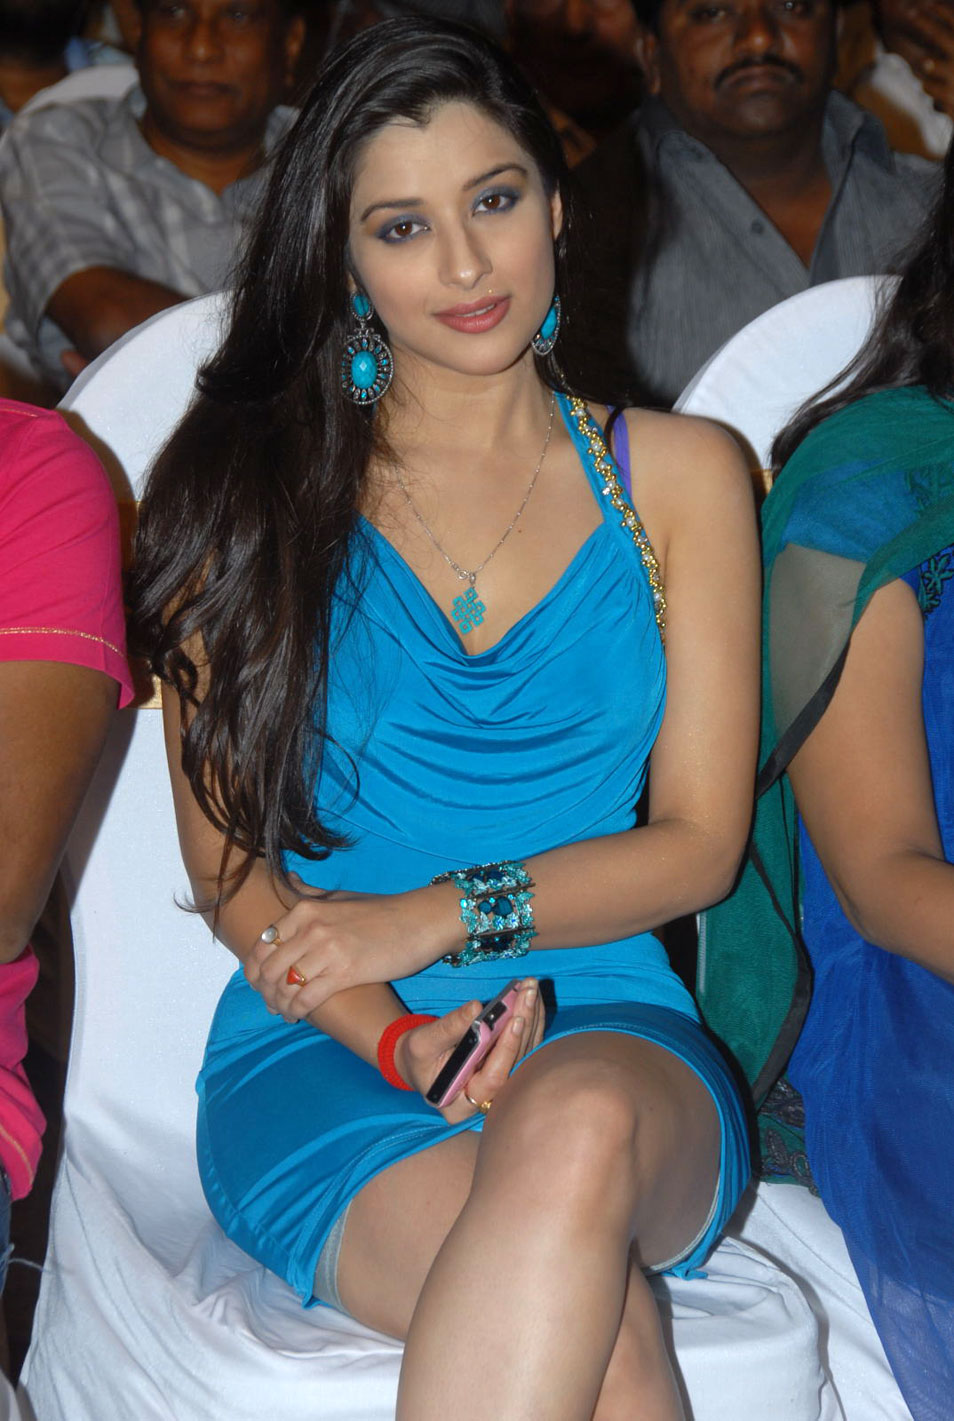 madhurima at mahankali audio launch, madhurima new